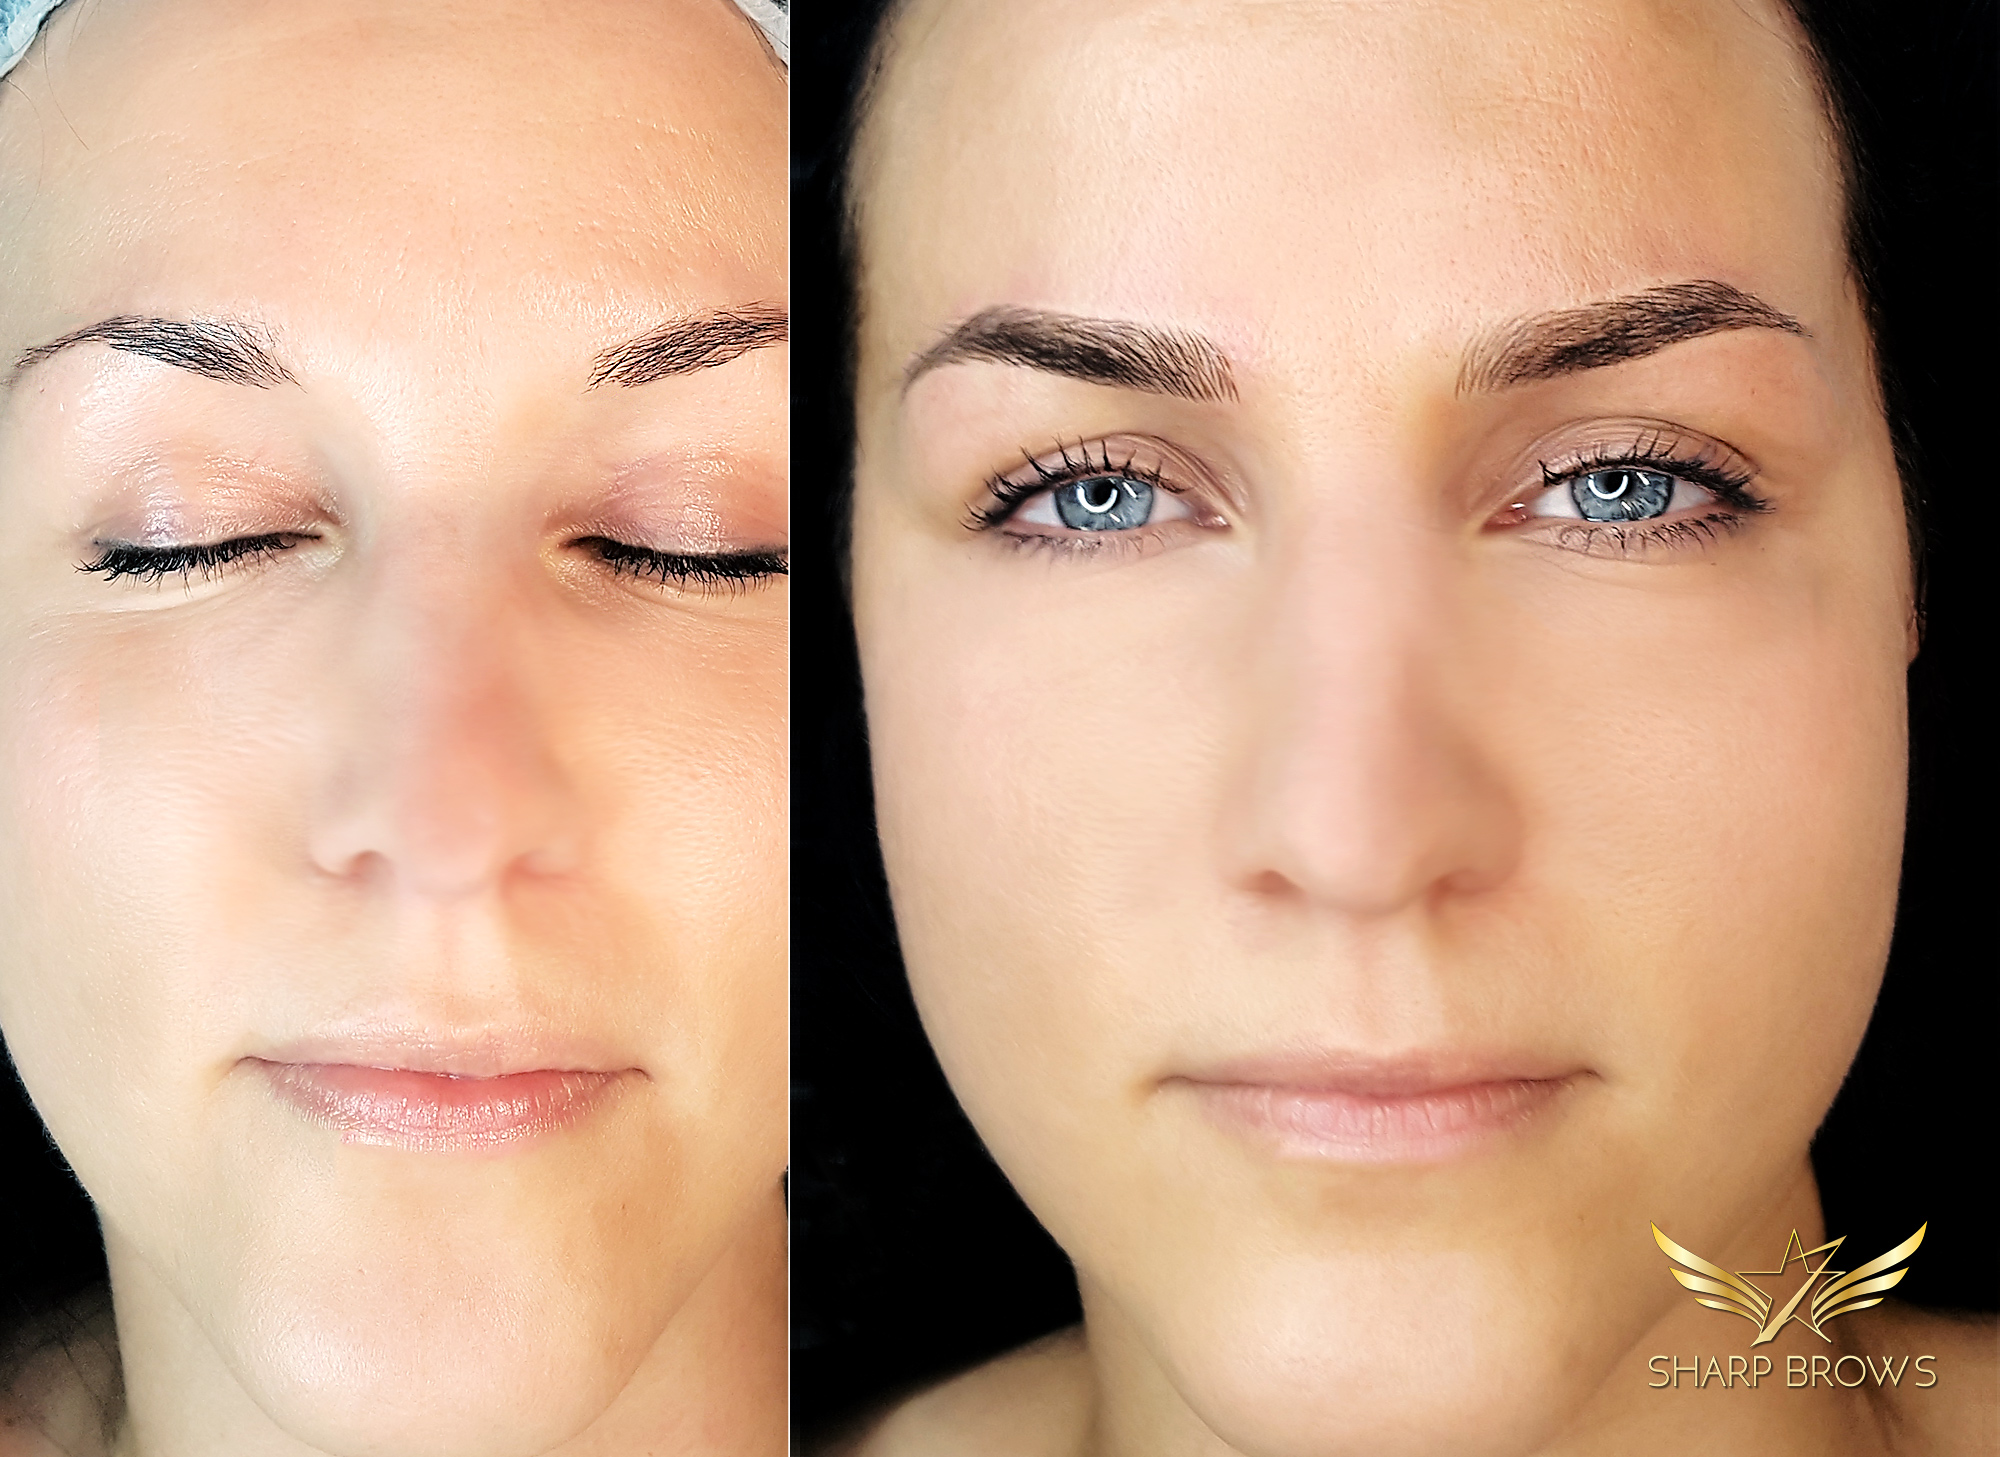 SharpBrows Light microblading - Just a sample how face starts shining the new way with the light microblading technique.